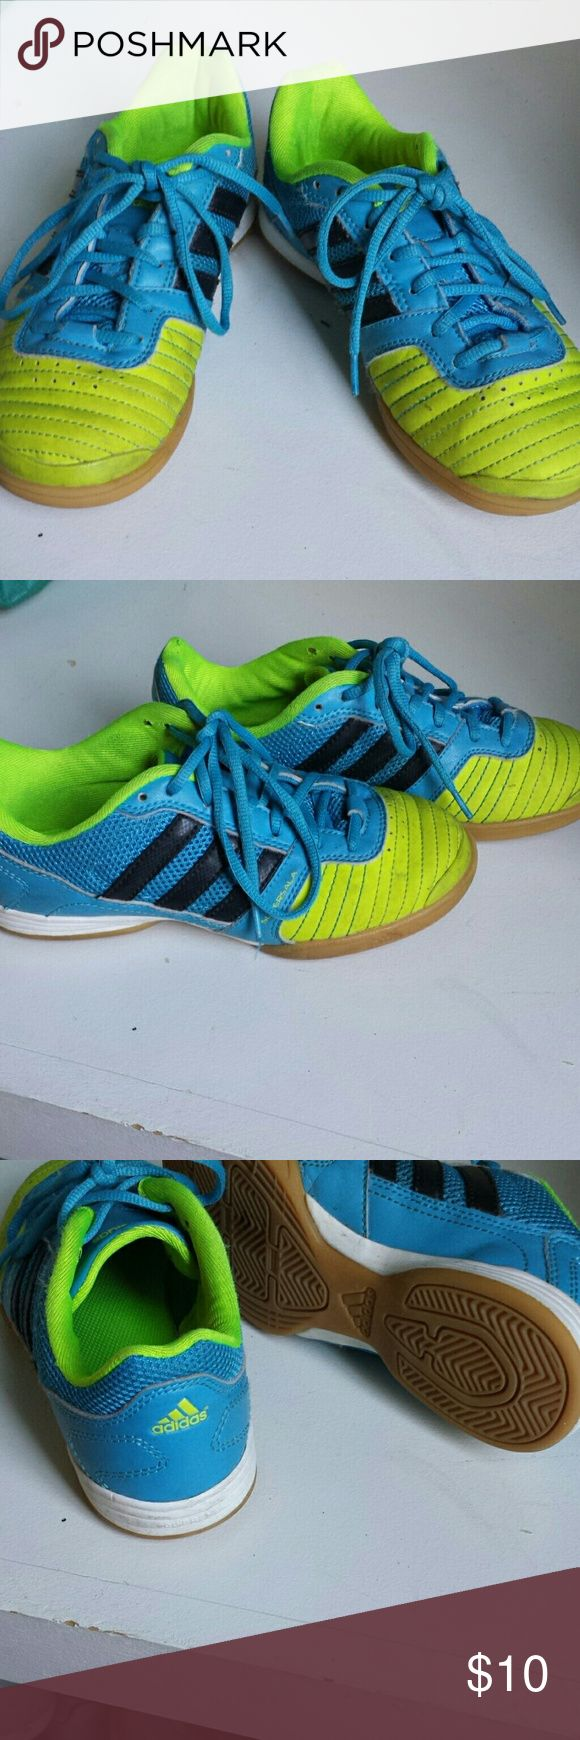 Adidas indoor soccer shoes, size 1 Aqua and neon Adidas indoor soccer shoes, size 1 adidas Shoes Sneakers